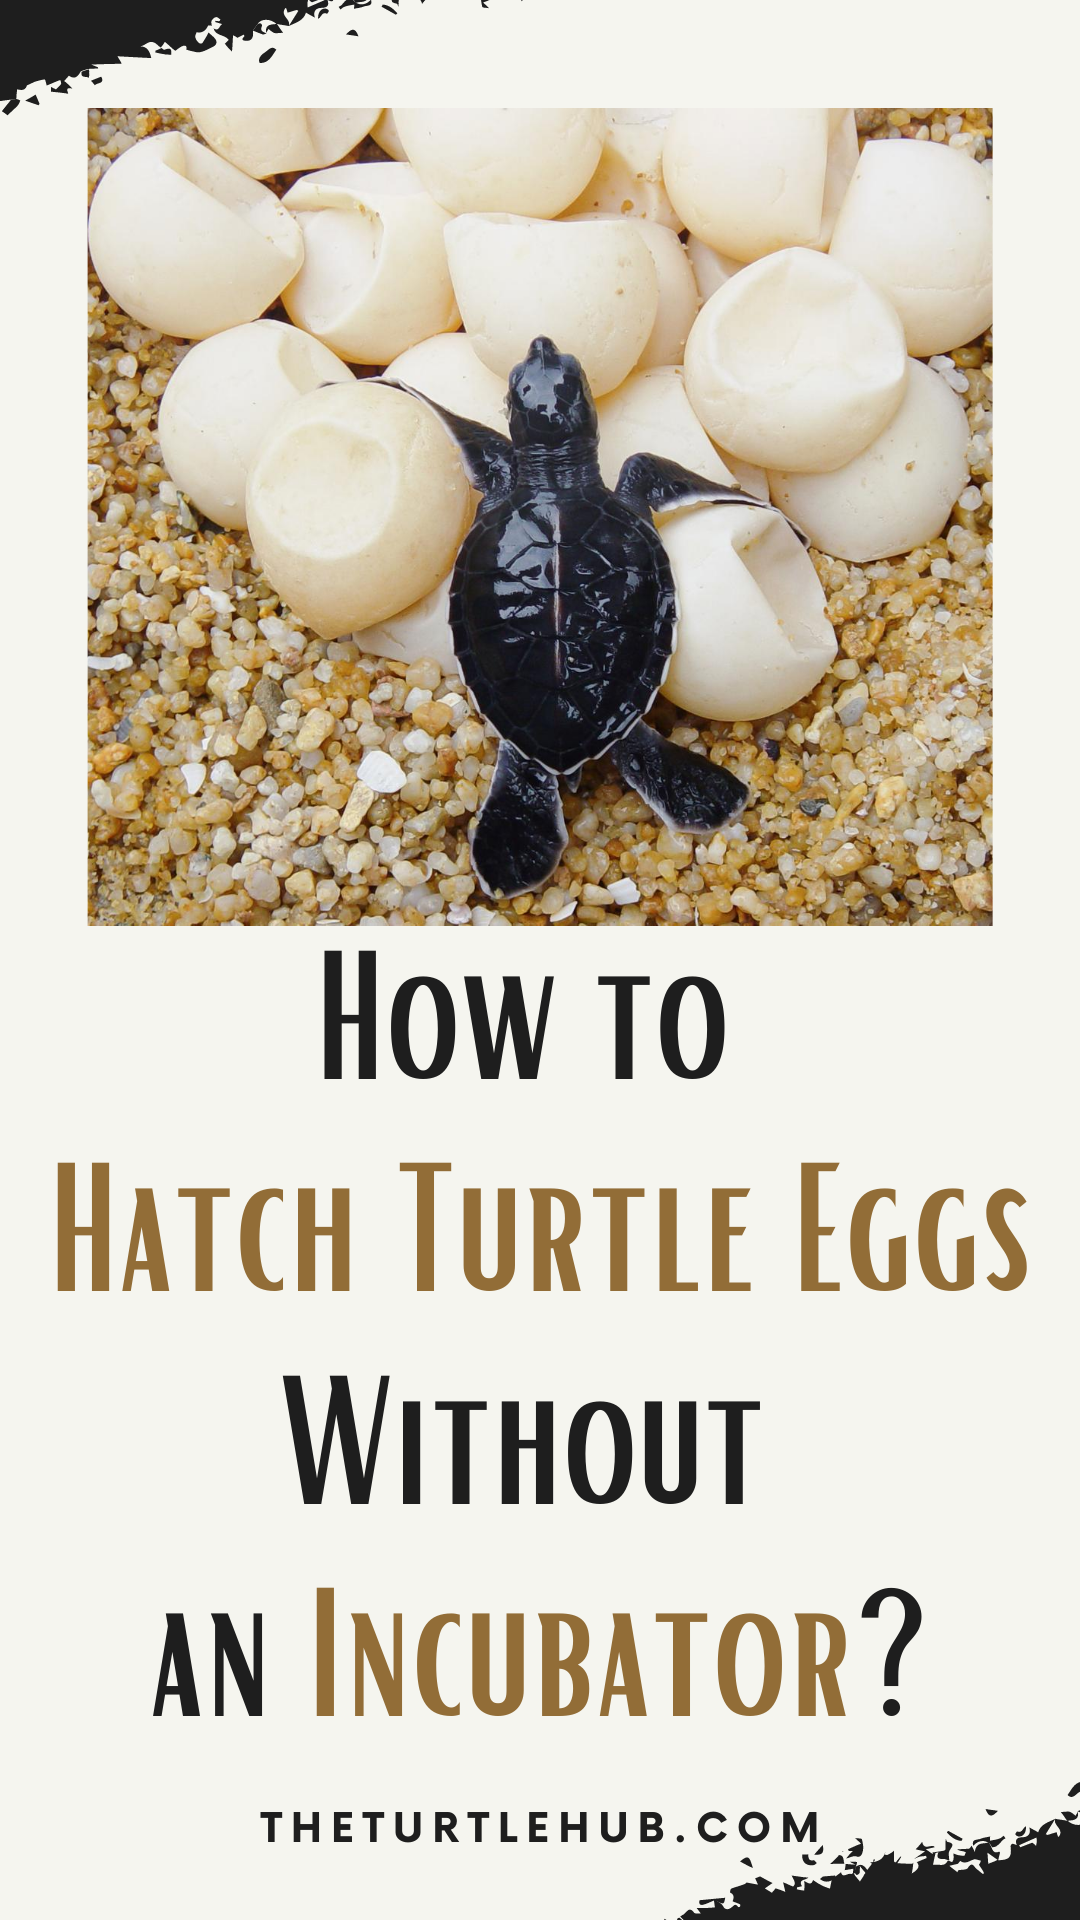 How To Hatch Turtle Eggs Without An Incubator In 2020 Reptile Eggs Reptile Incubator Eggs